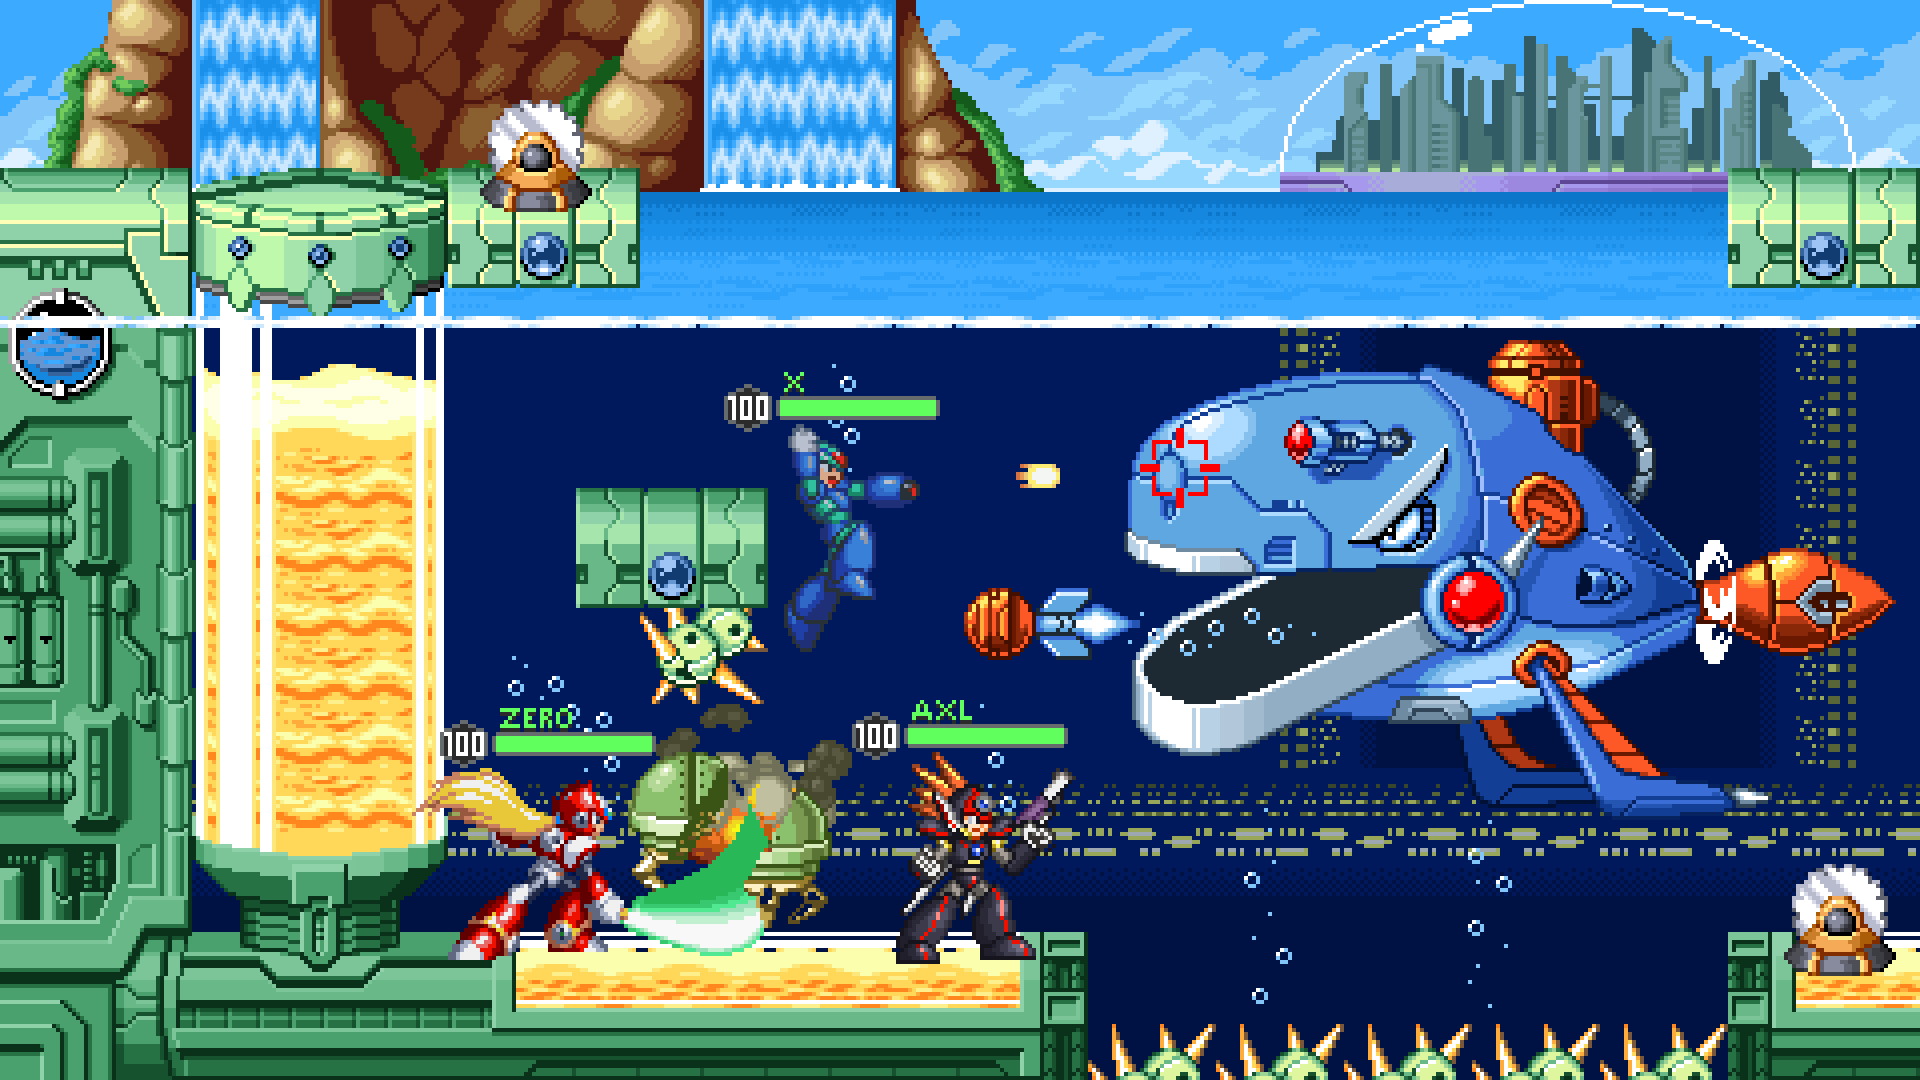 Megaman X Dive man stage?